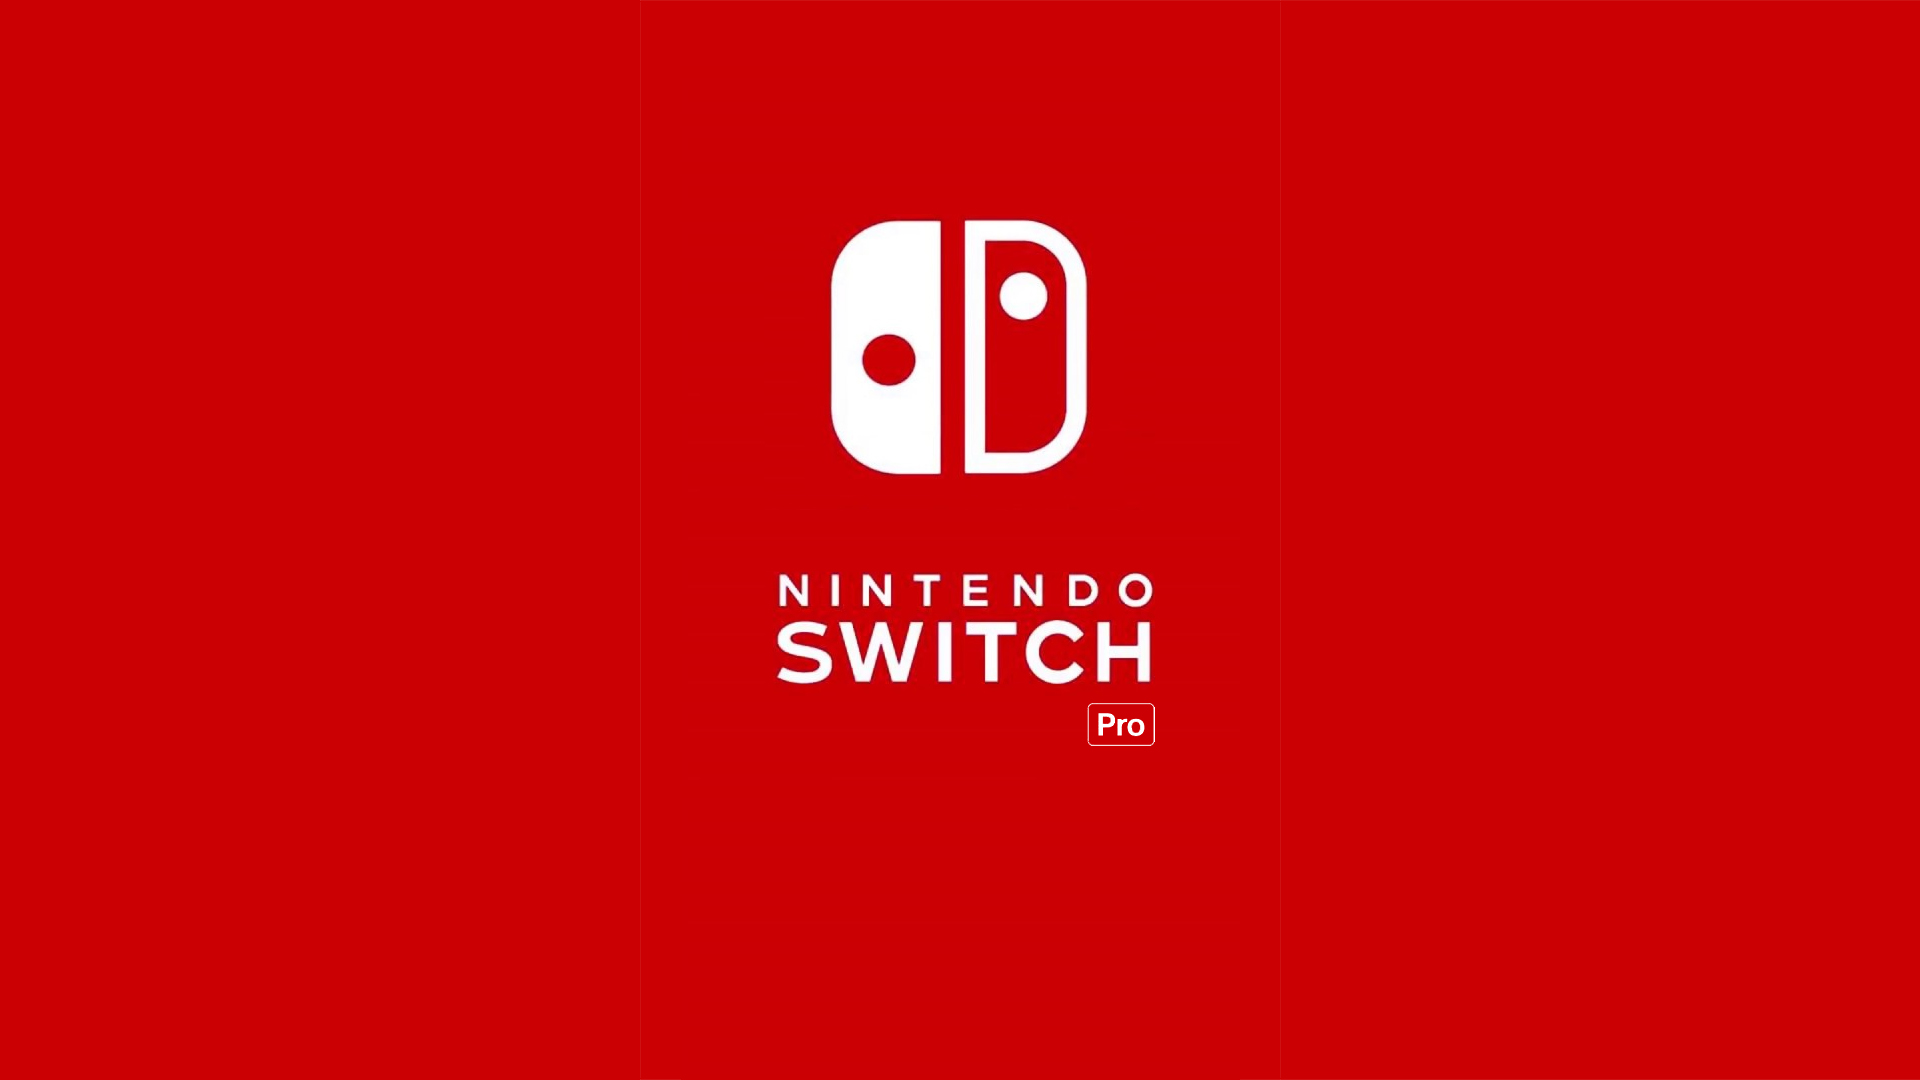 Nintendo Switch Pro / Nintendo Switch Mini